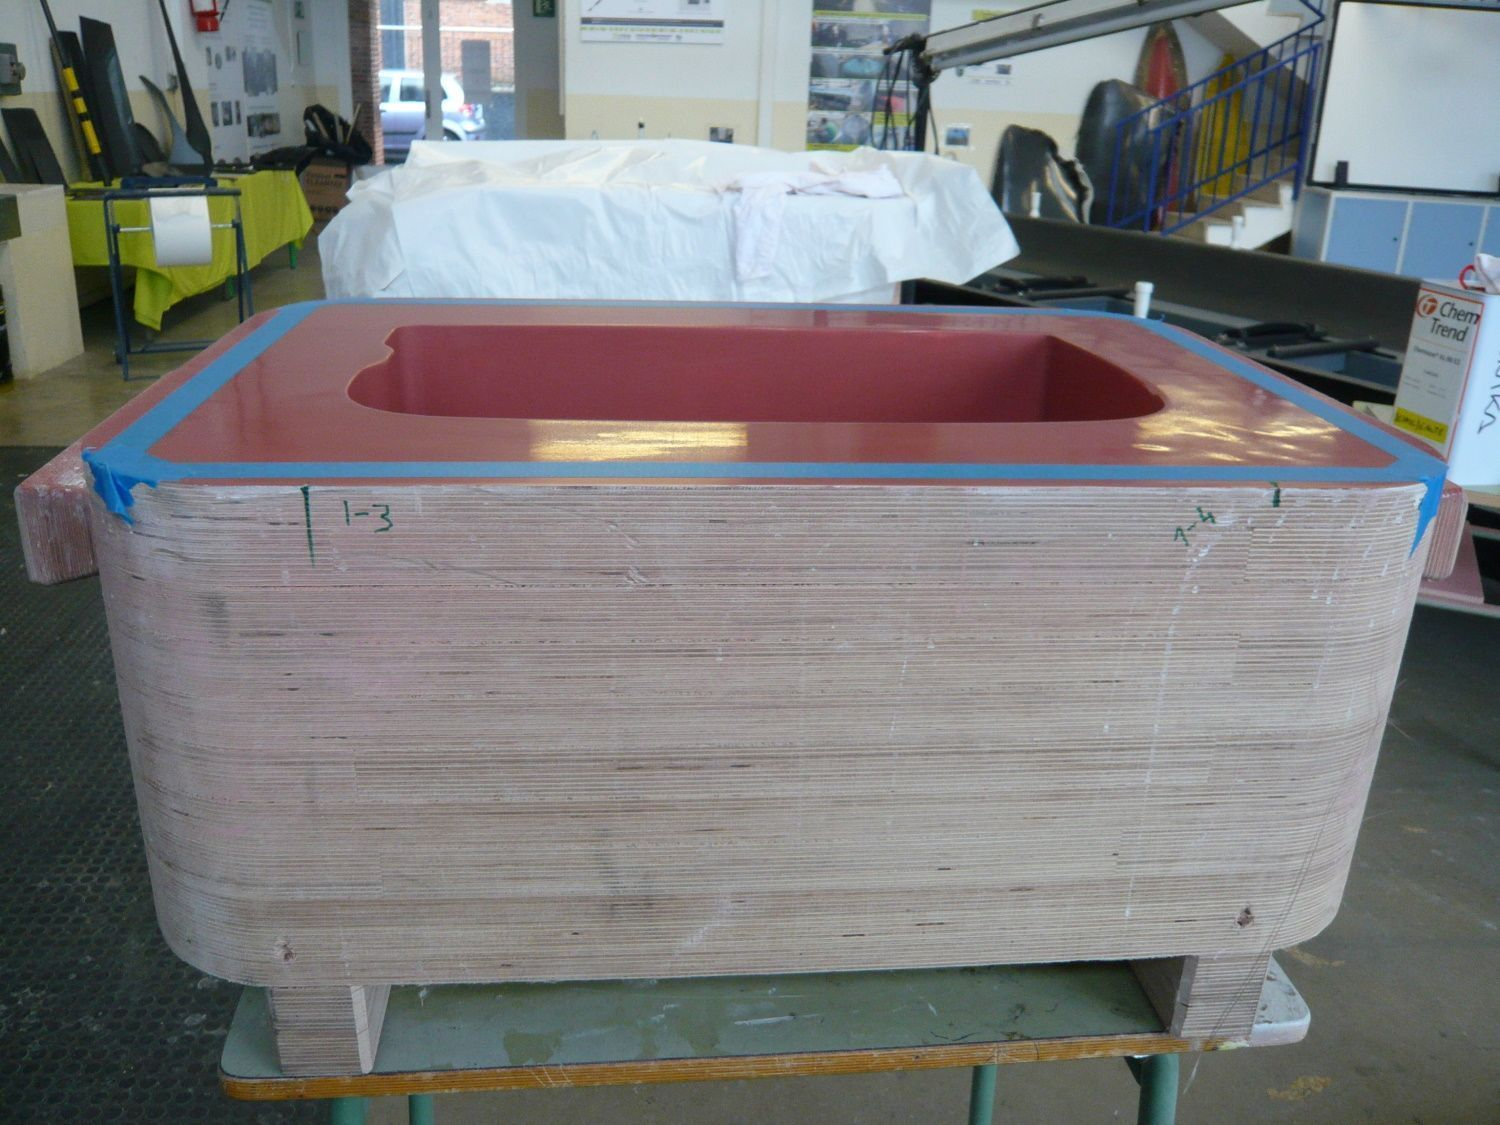 Creation of the musical instrument mold